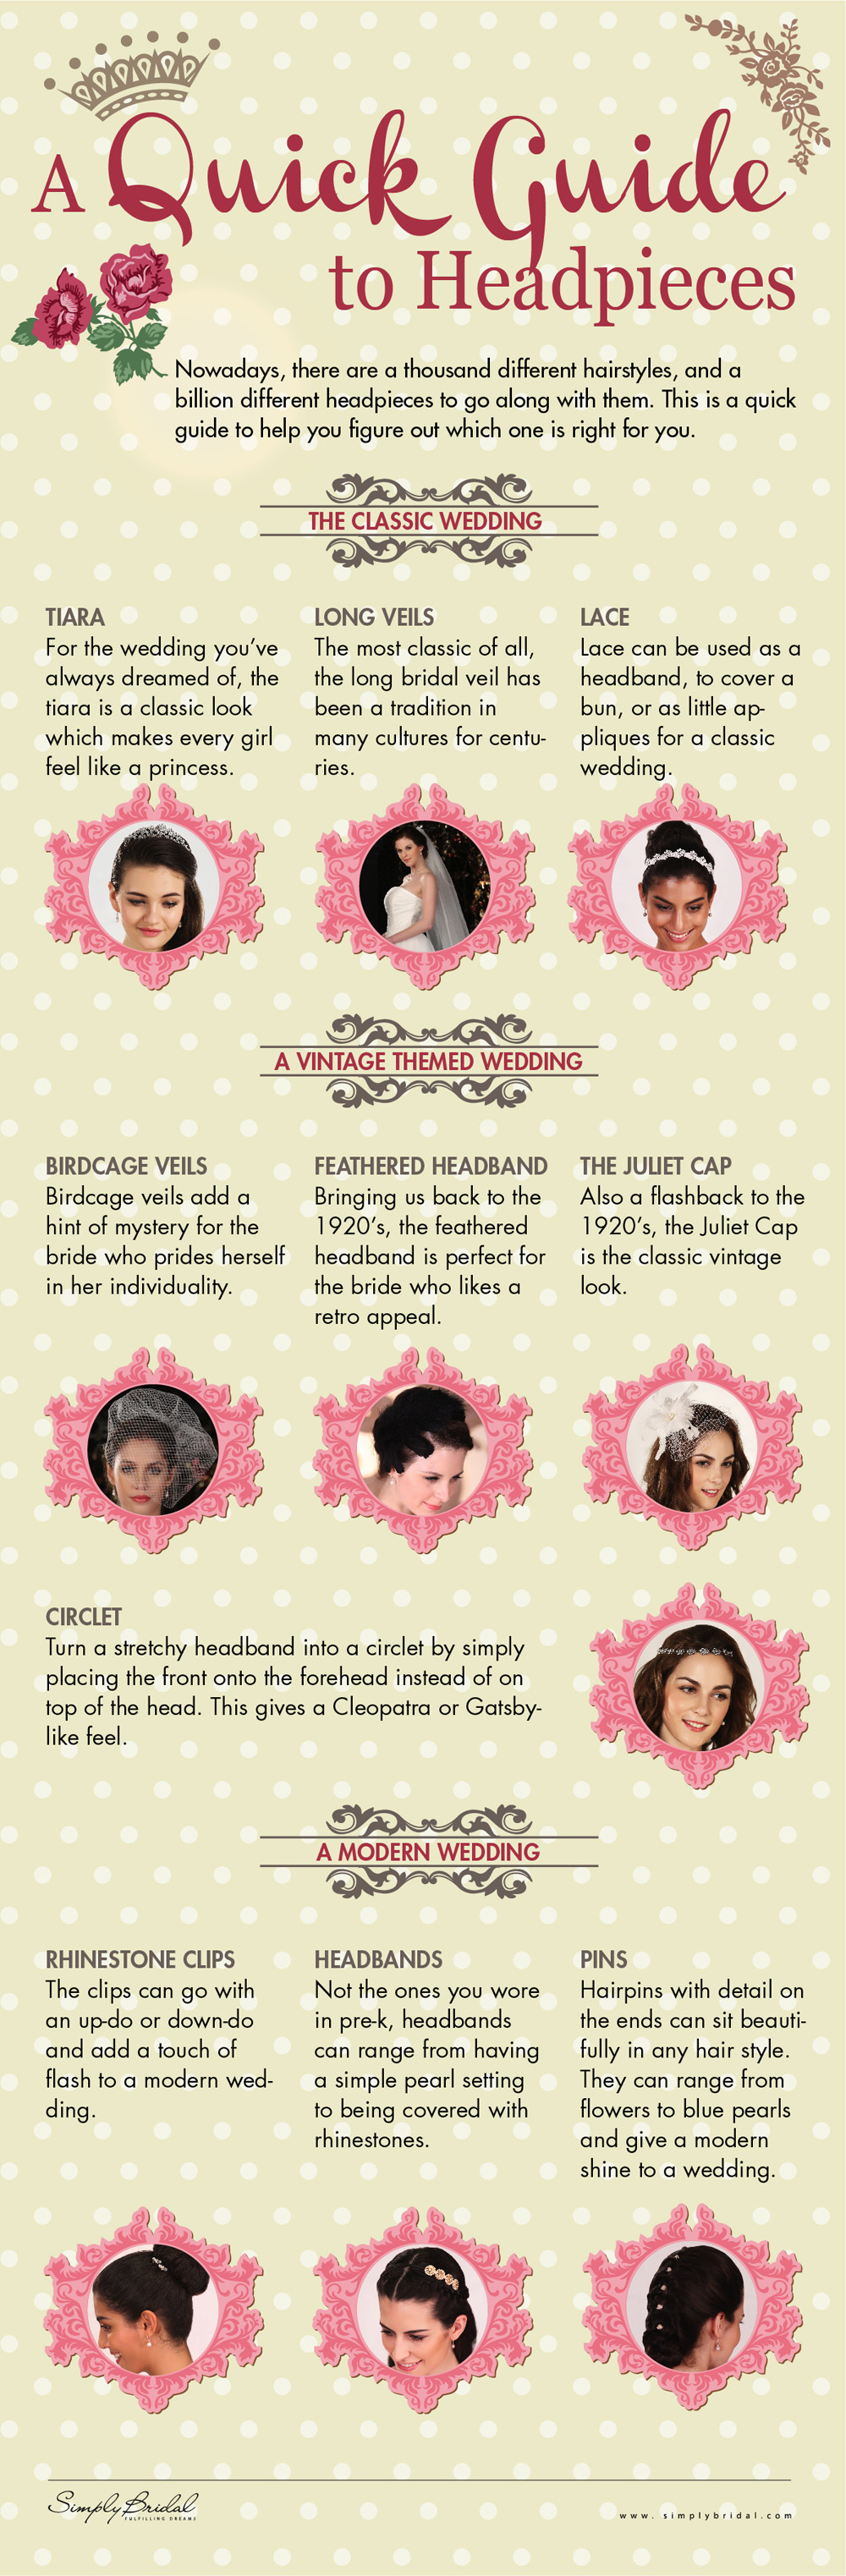 A Guide to Headpieces by SimplyBridal